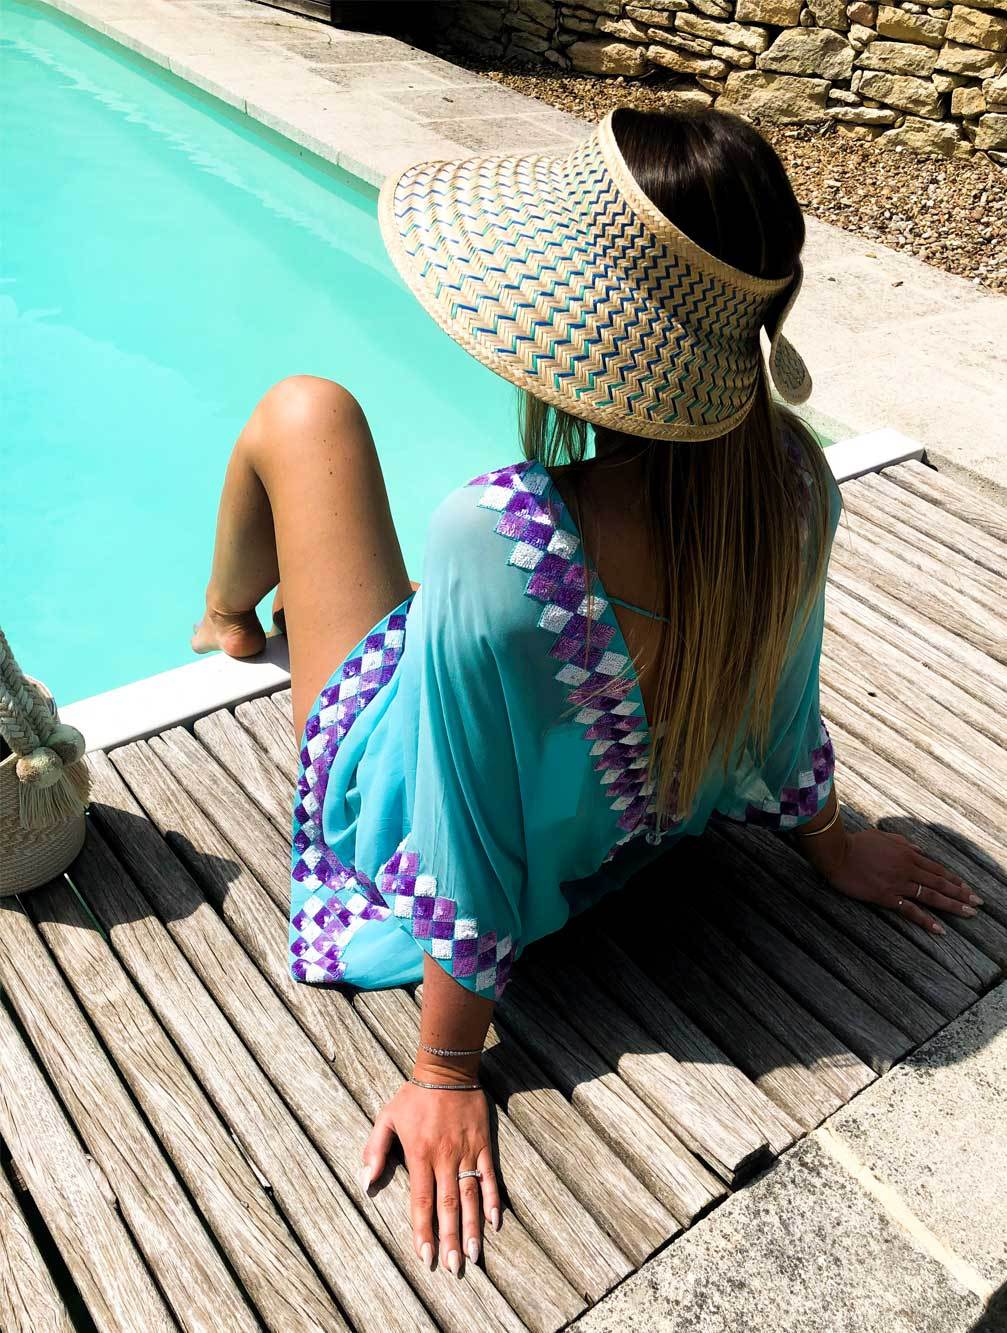 YOSUZI-Amina-Visor-woven-luxury-beachwear-resortwear-uk-kaia-london